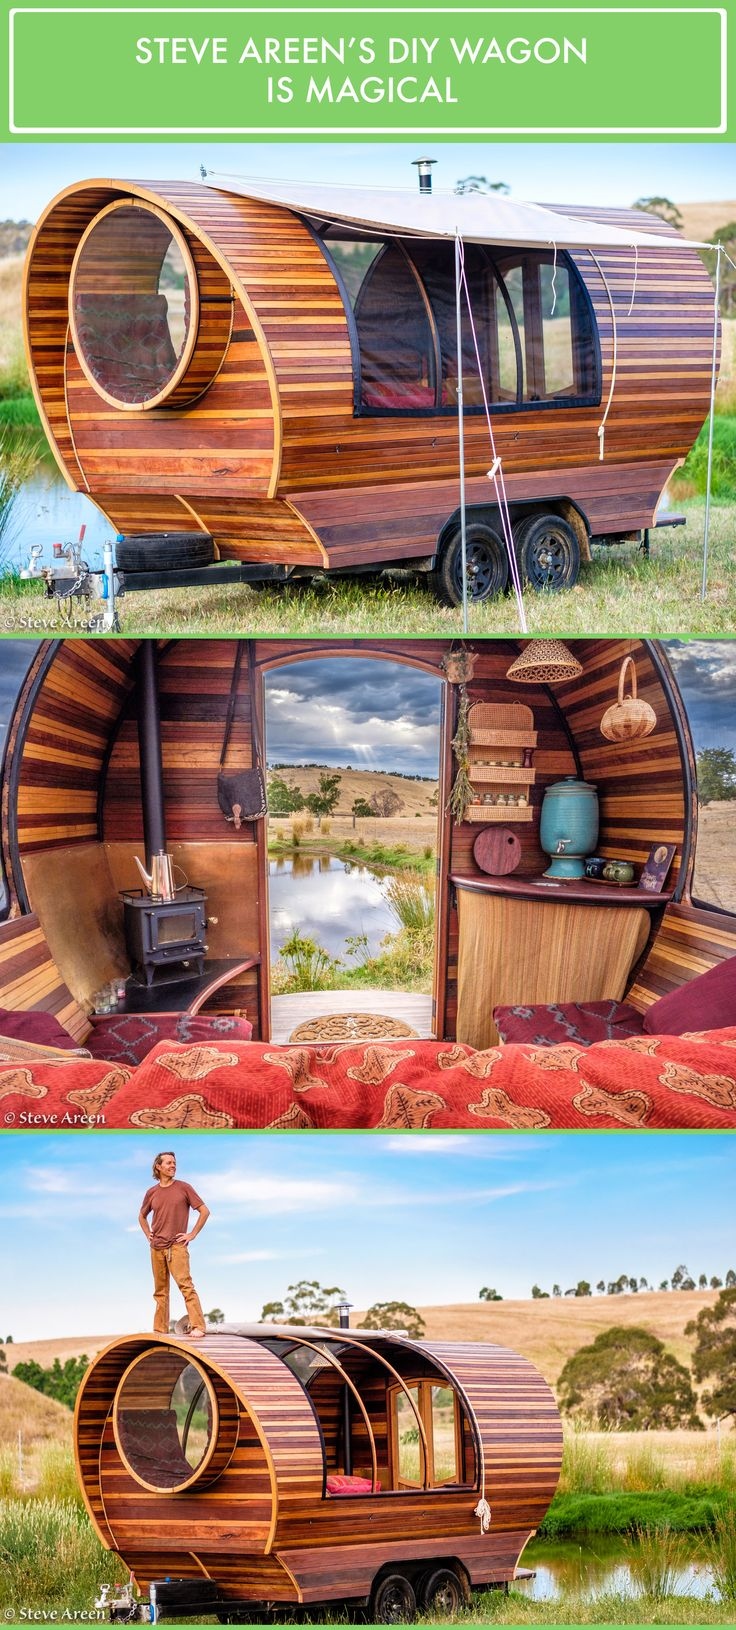 239 best diy camper images on Pinterest | Tear drop camper, 5th ...